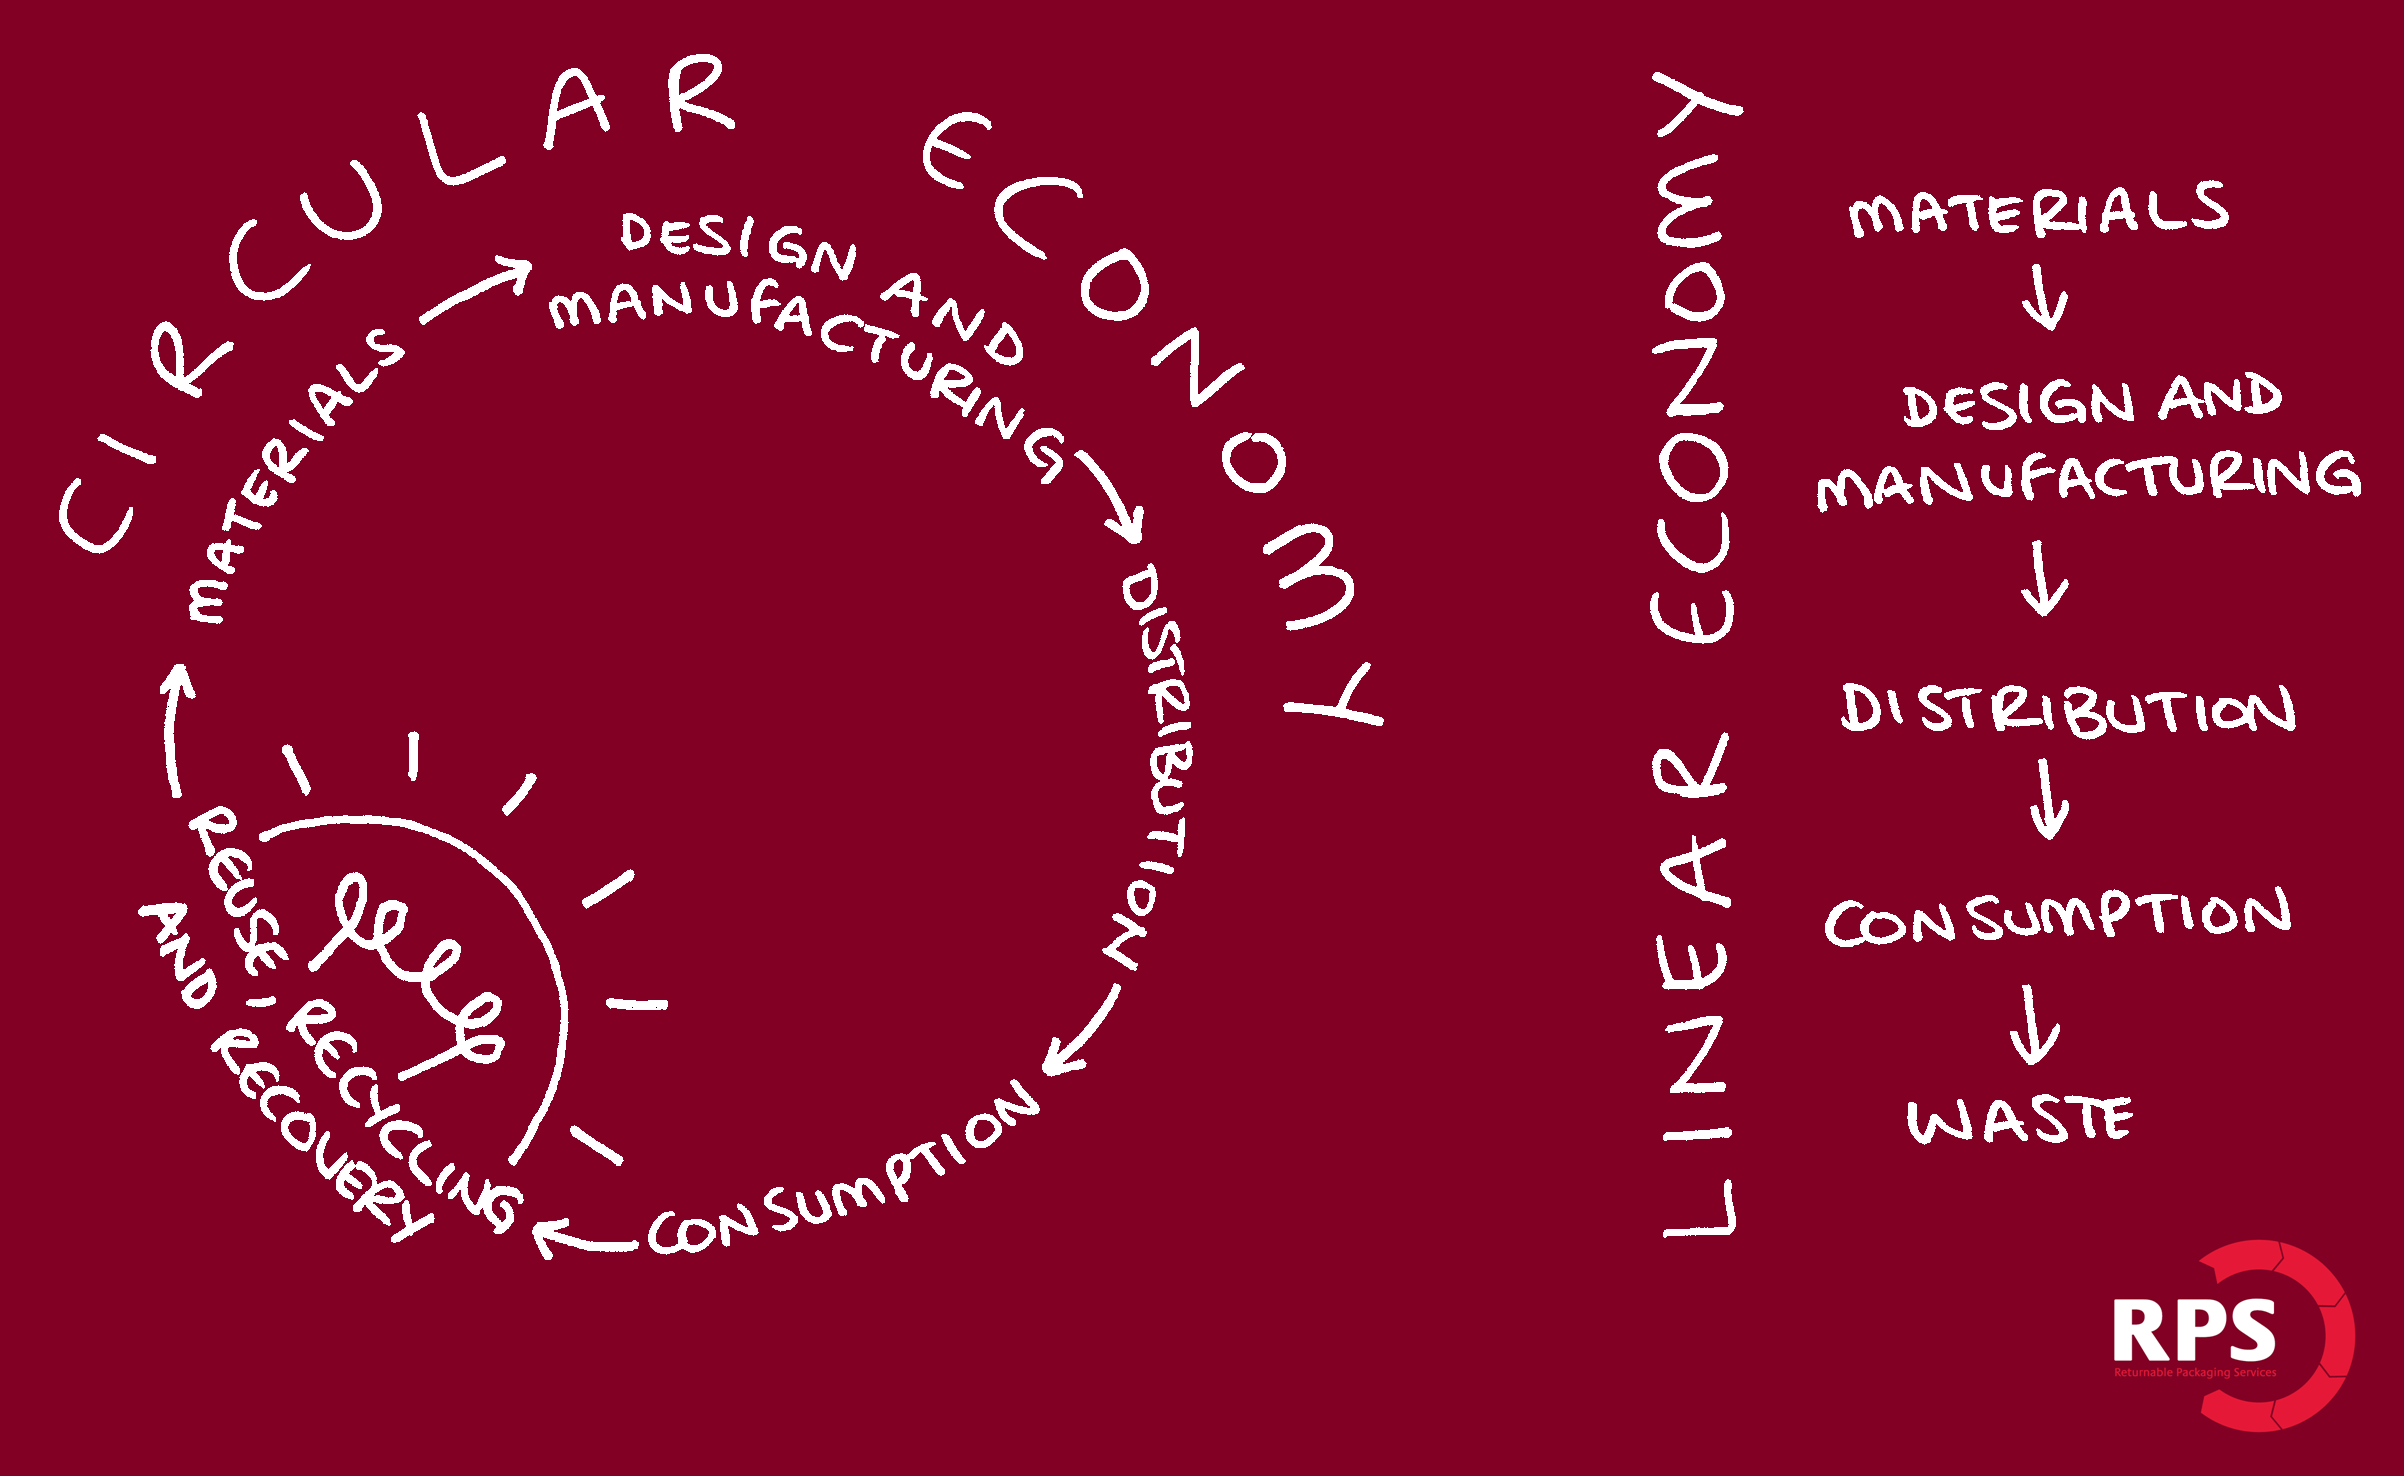 RPS Circular Economy Image with Linear Economy